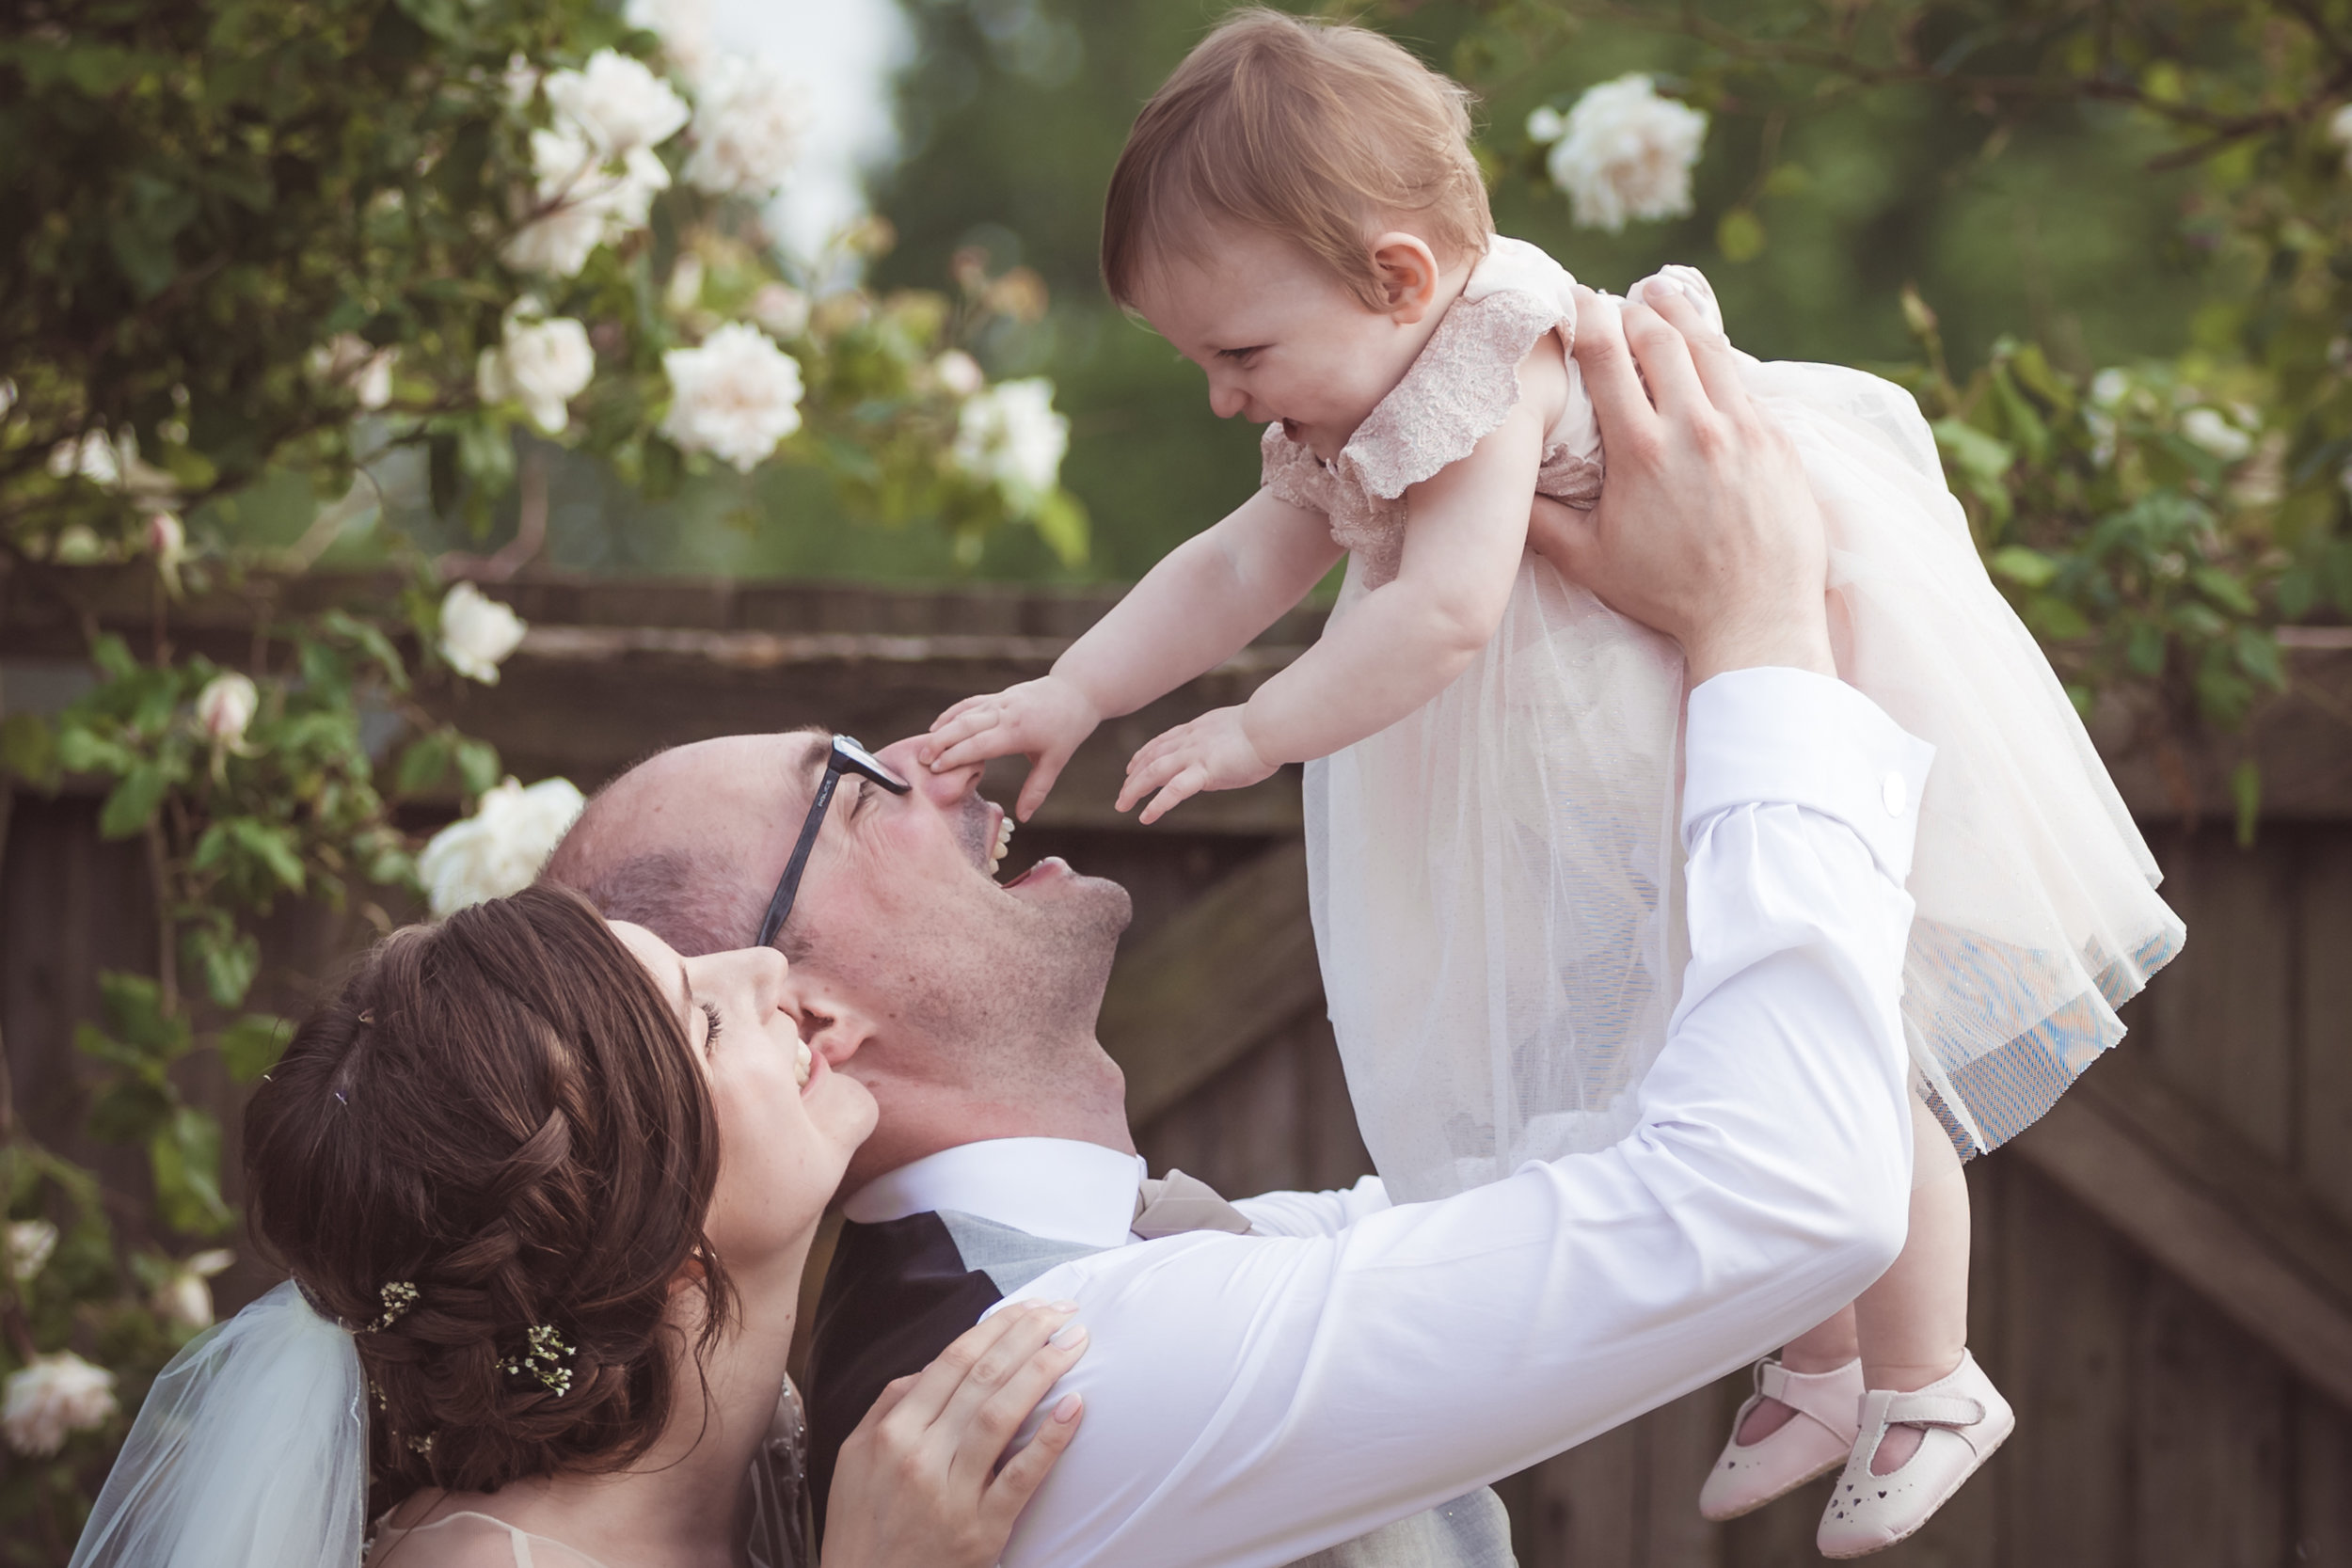 Dodford Manor bride and groom with child, close up, happy, laughing, roses, gate, natural wedding photogaphy, Best wedding photographers in Northamptonshire, natural, creative, Leicestershire, Rutland, Cambridgeshire, wedding, wedding photographers, wedding photography, Sara Mayer, Douglas Mayer, Fotovida Photography, excellent reviews, premium wedding photographers, premium service